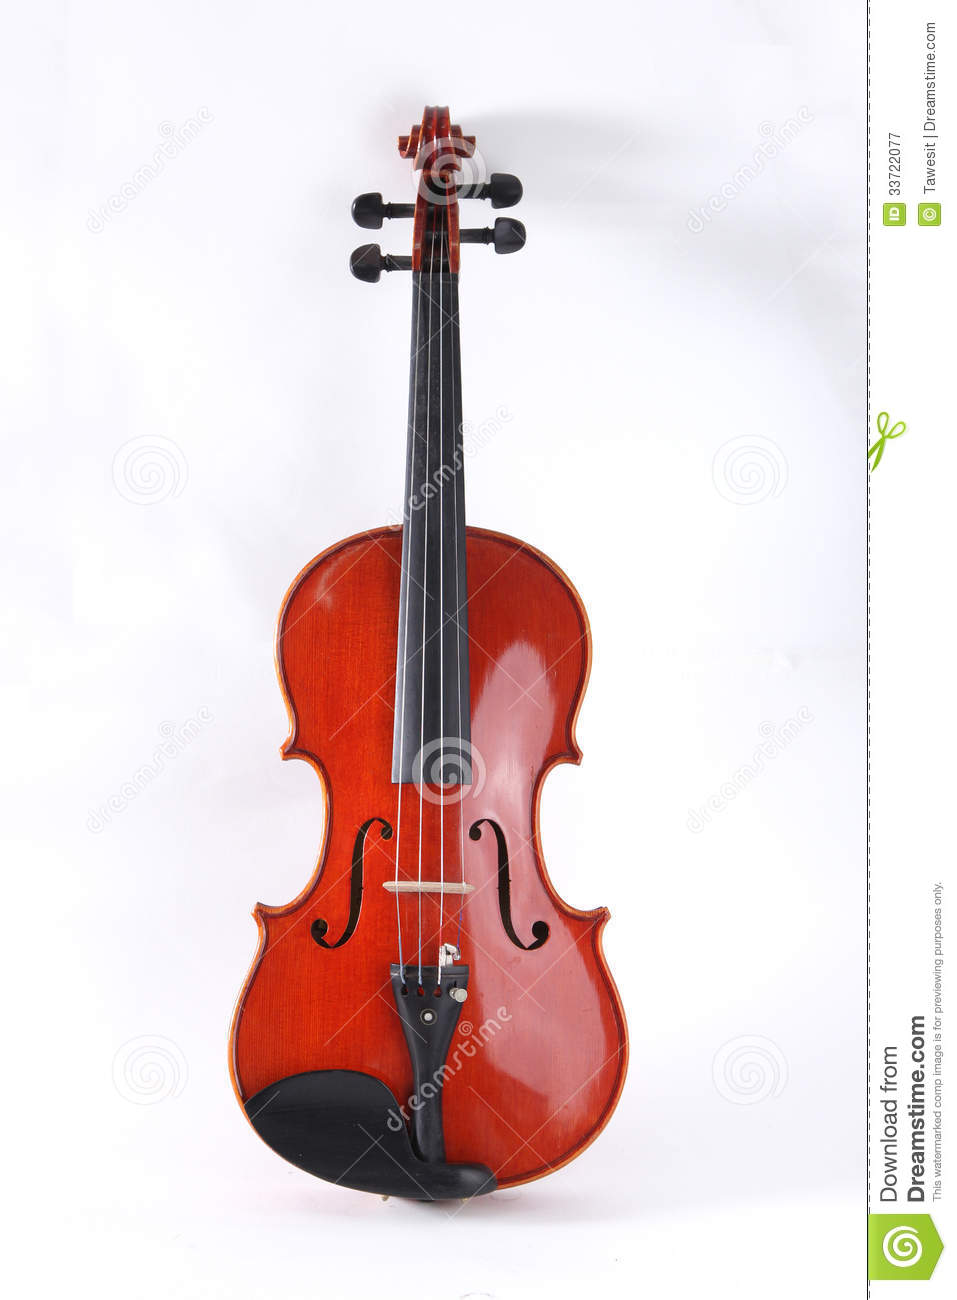 violin classical music instrument stock image   image